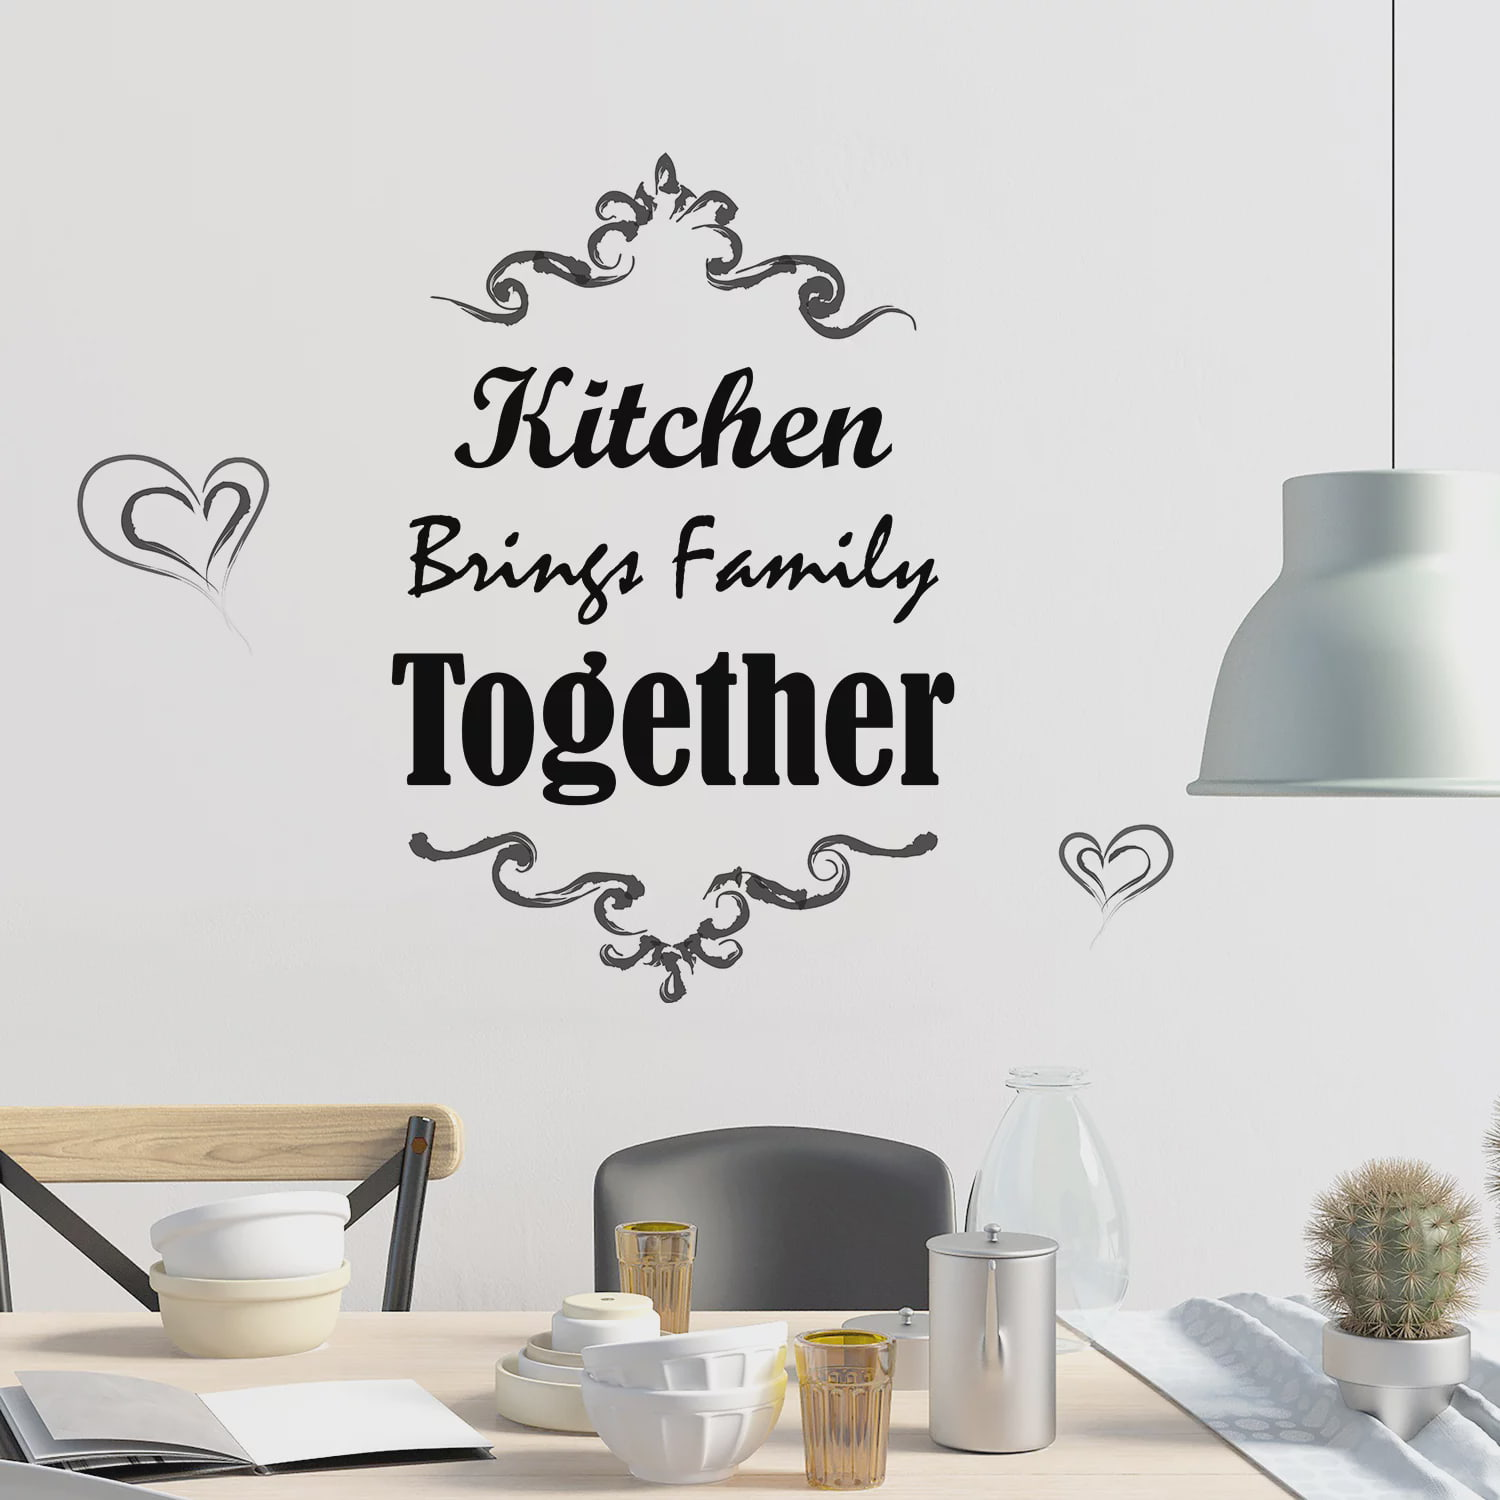 Kitchen Quote Kitchen Brings Family Together, Wall ...